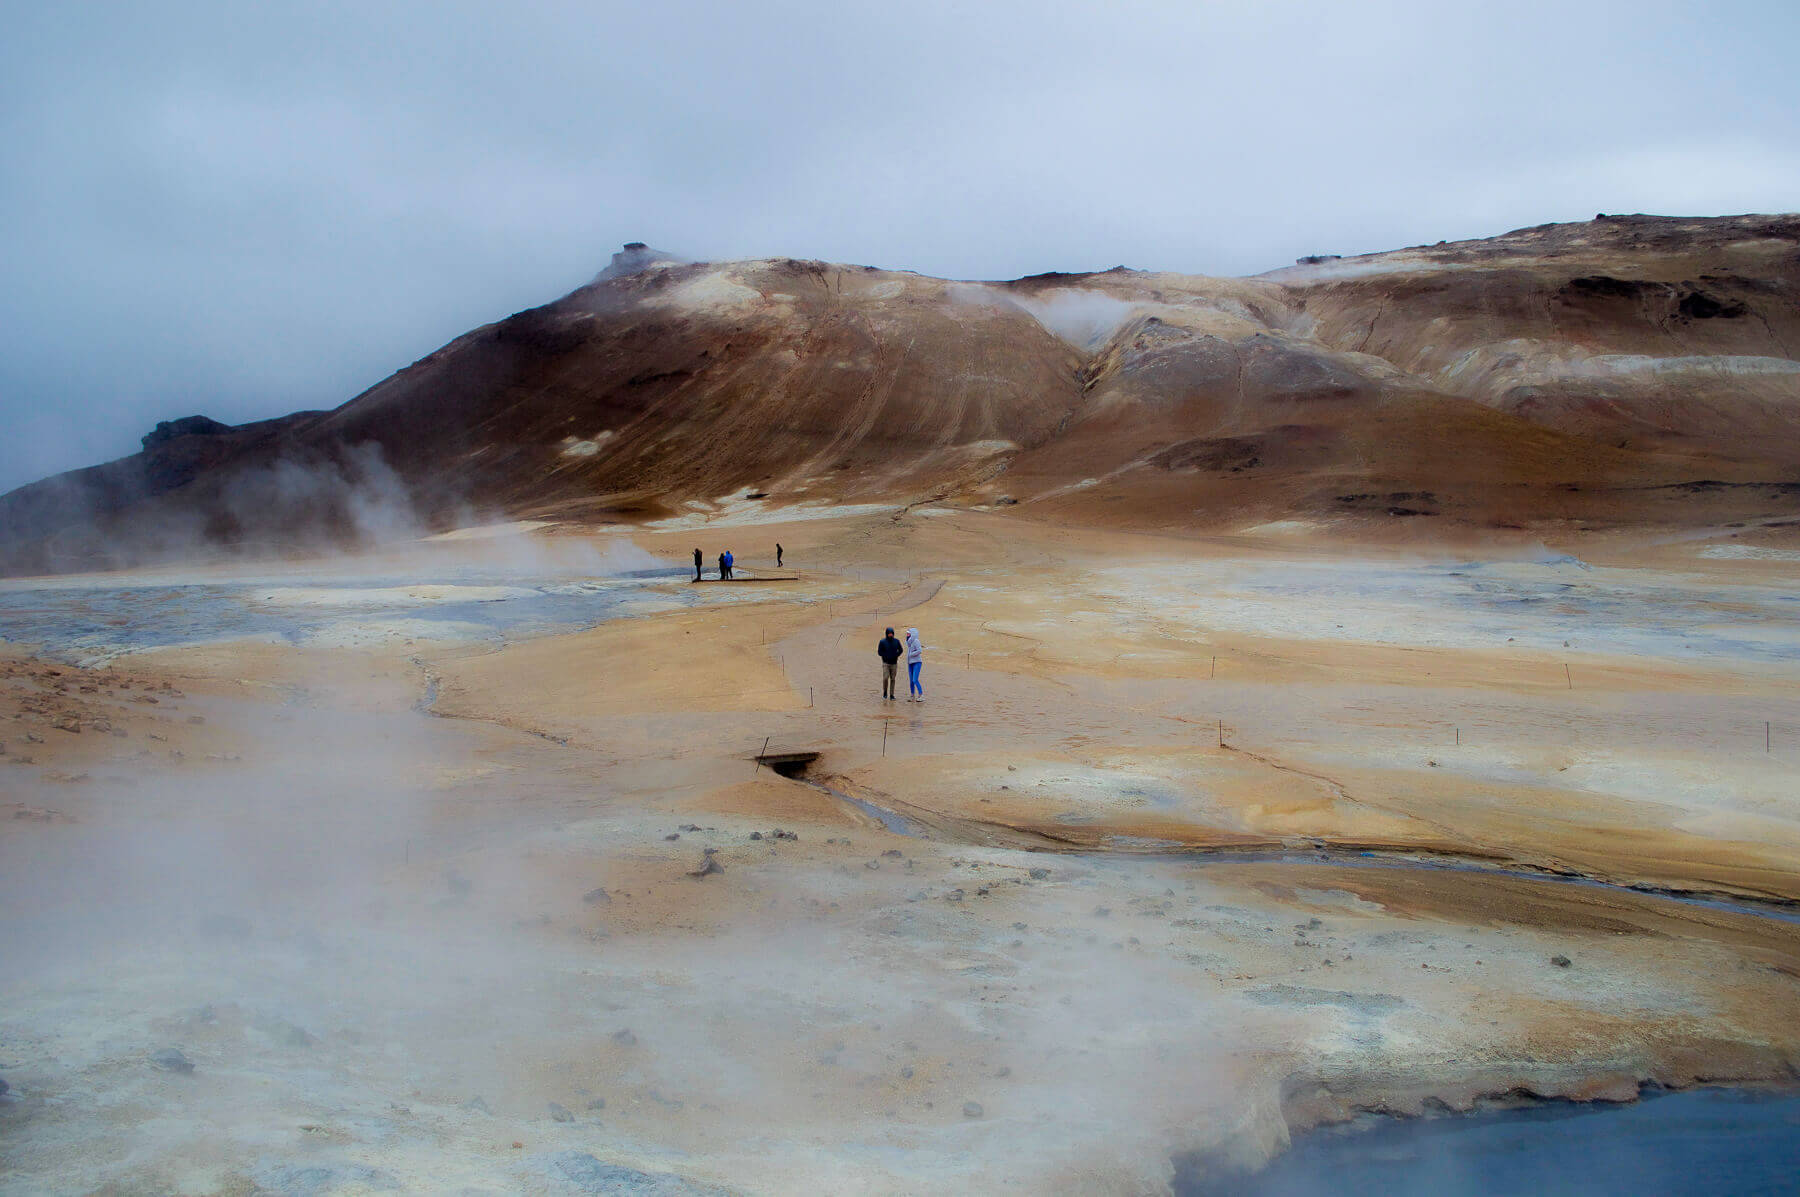 People standing on a geothermal field surrounded by smoke